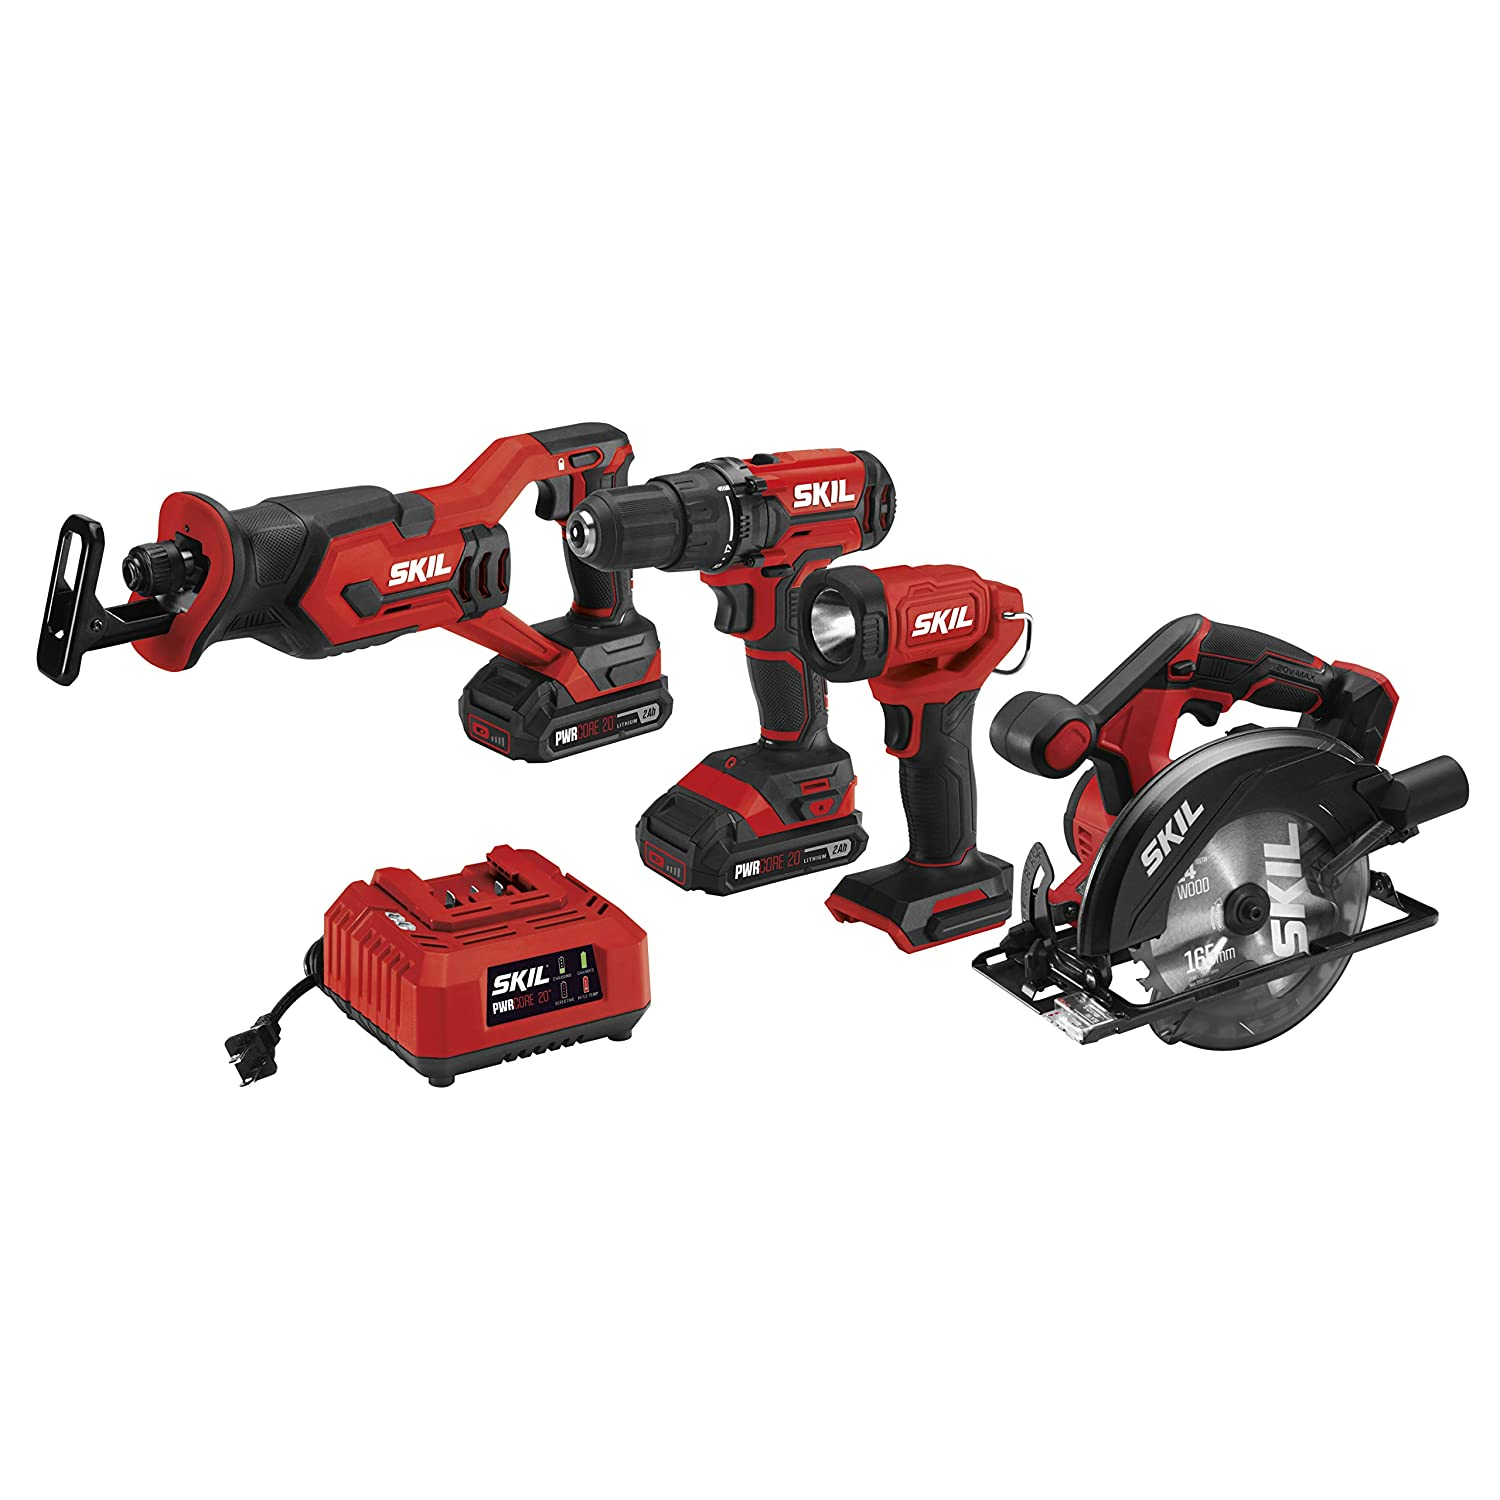 SKIL 20V 4-Tool Combo Kit 20V Cordless Drill Driver, Reciprocating Saw, Circular Saw and Spotlight, Includes Two 2.0Ah Lithium Batteries and One Charger – CB739701